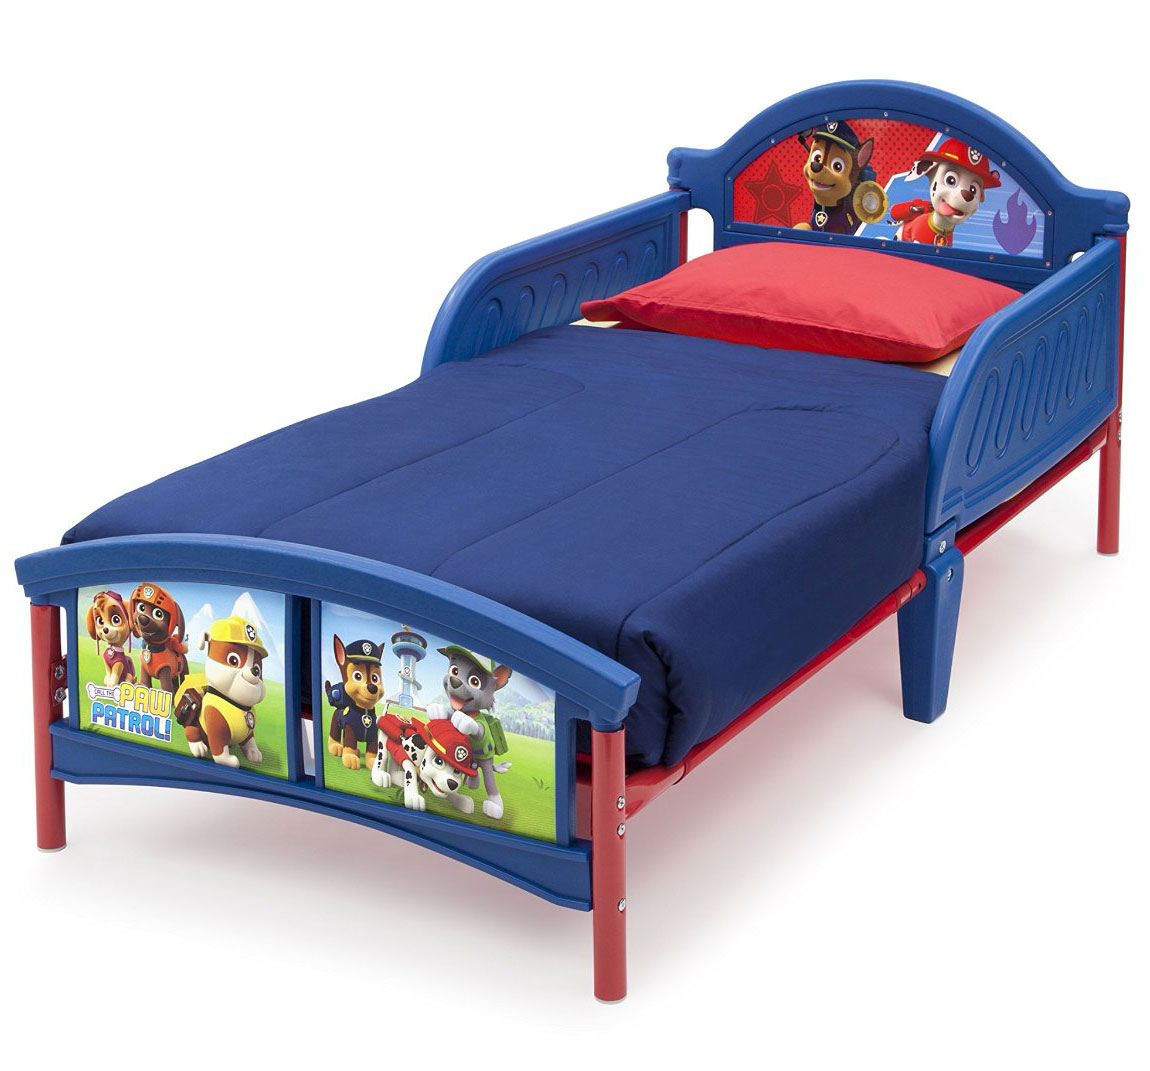 Paw Patrol Rescue Junior Bed